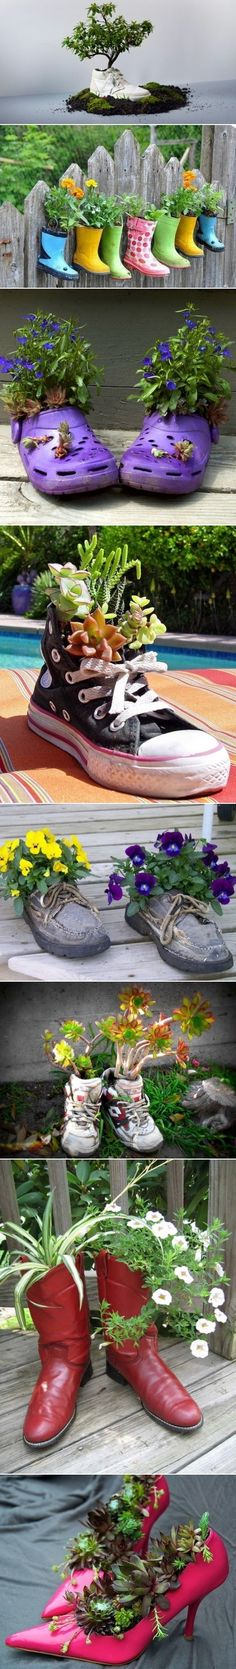 What Can We Do with Old Shoes? Please do not throw away old shoes. You can recycle the old shoes to Decorate Gardens And Outdoor Rooms. Garden Crafts, Garden Projects, Garden Ideas, Garden Pots, Diy Projects, Yard Art, Old Shoes, Outdoor Projects, Dream Garden